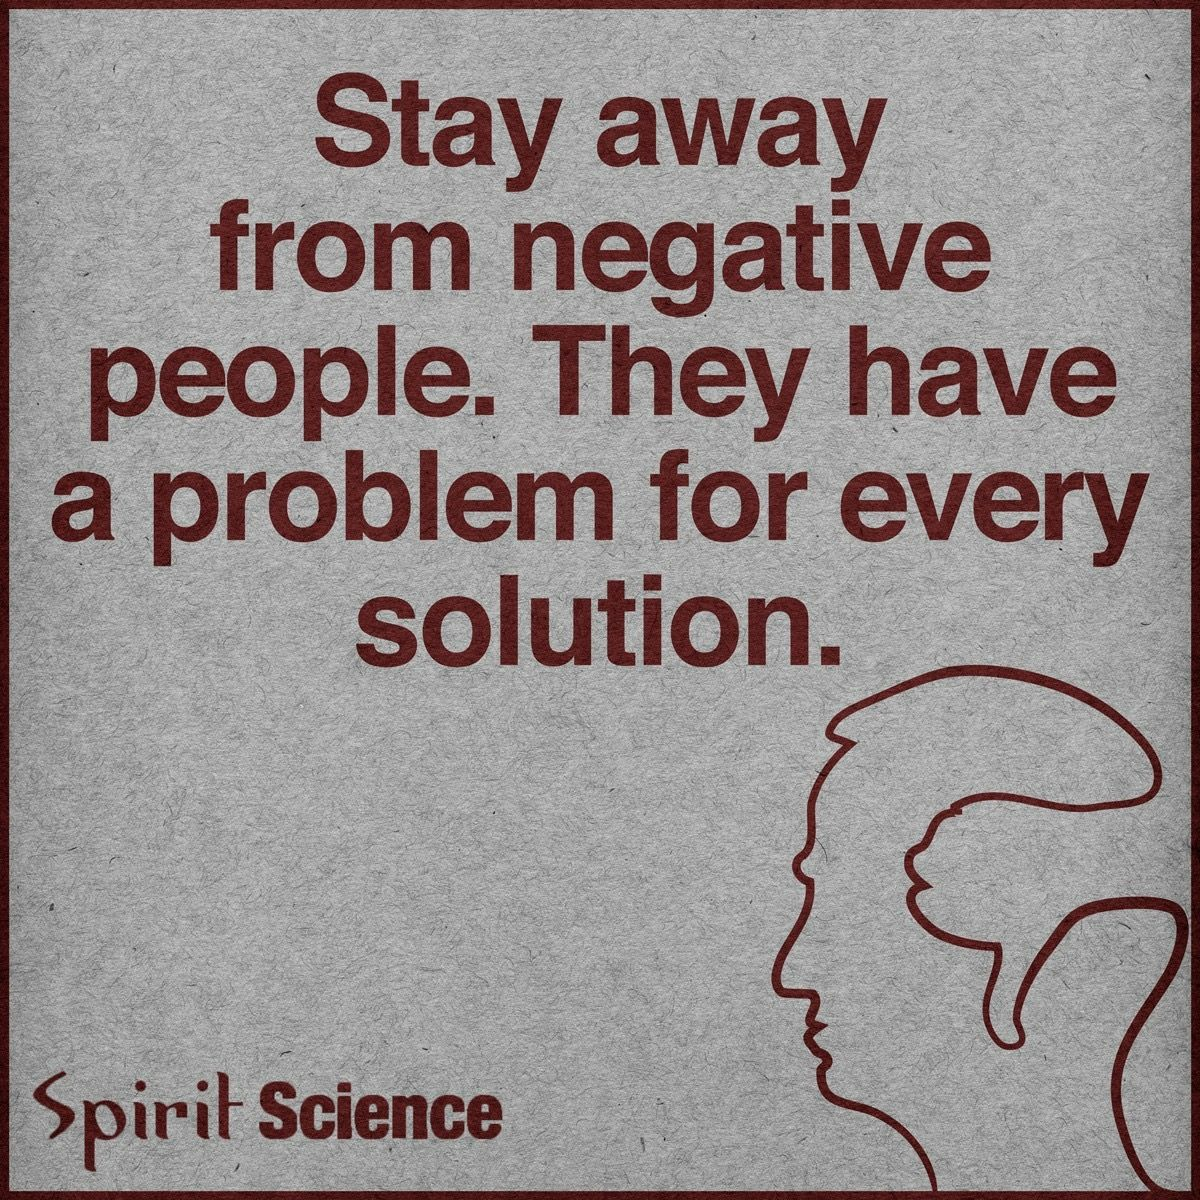 Negative People Have A Problem For Every Solution Jesus